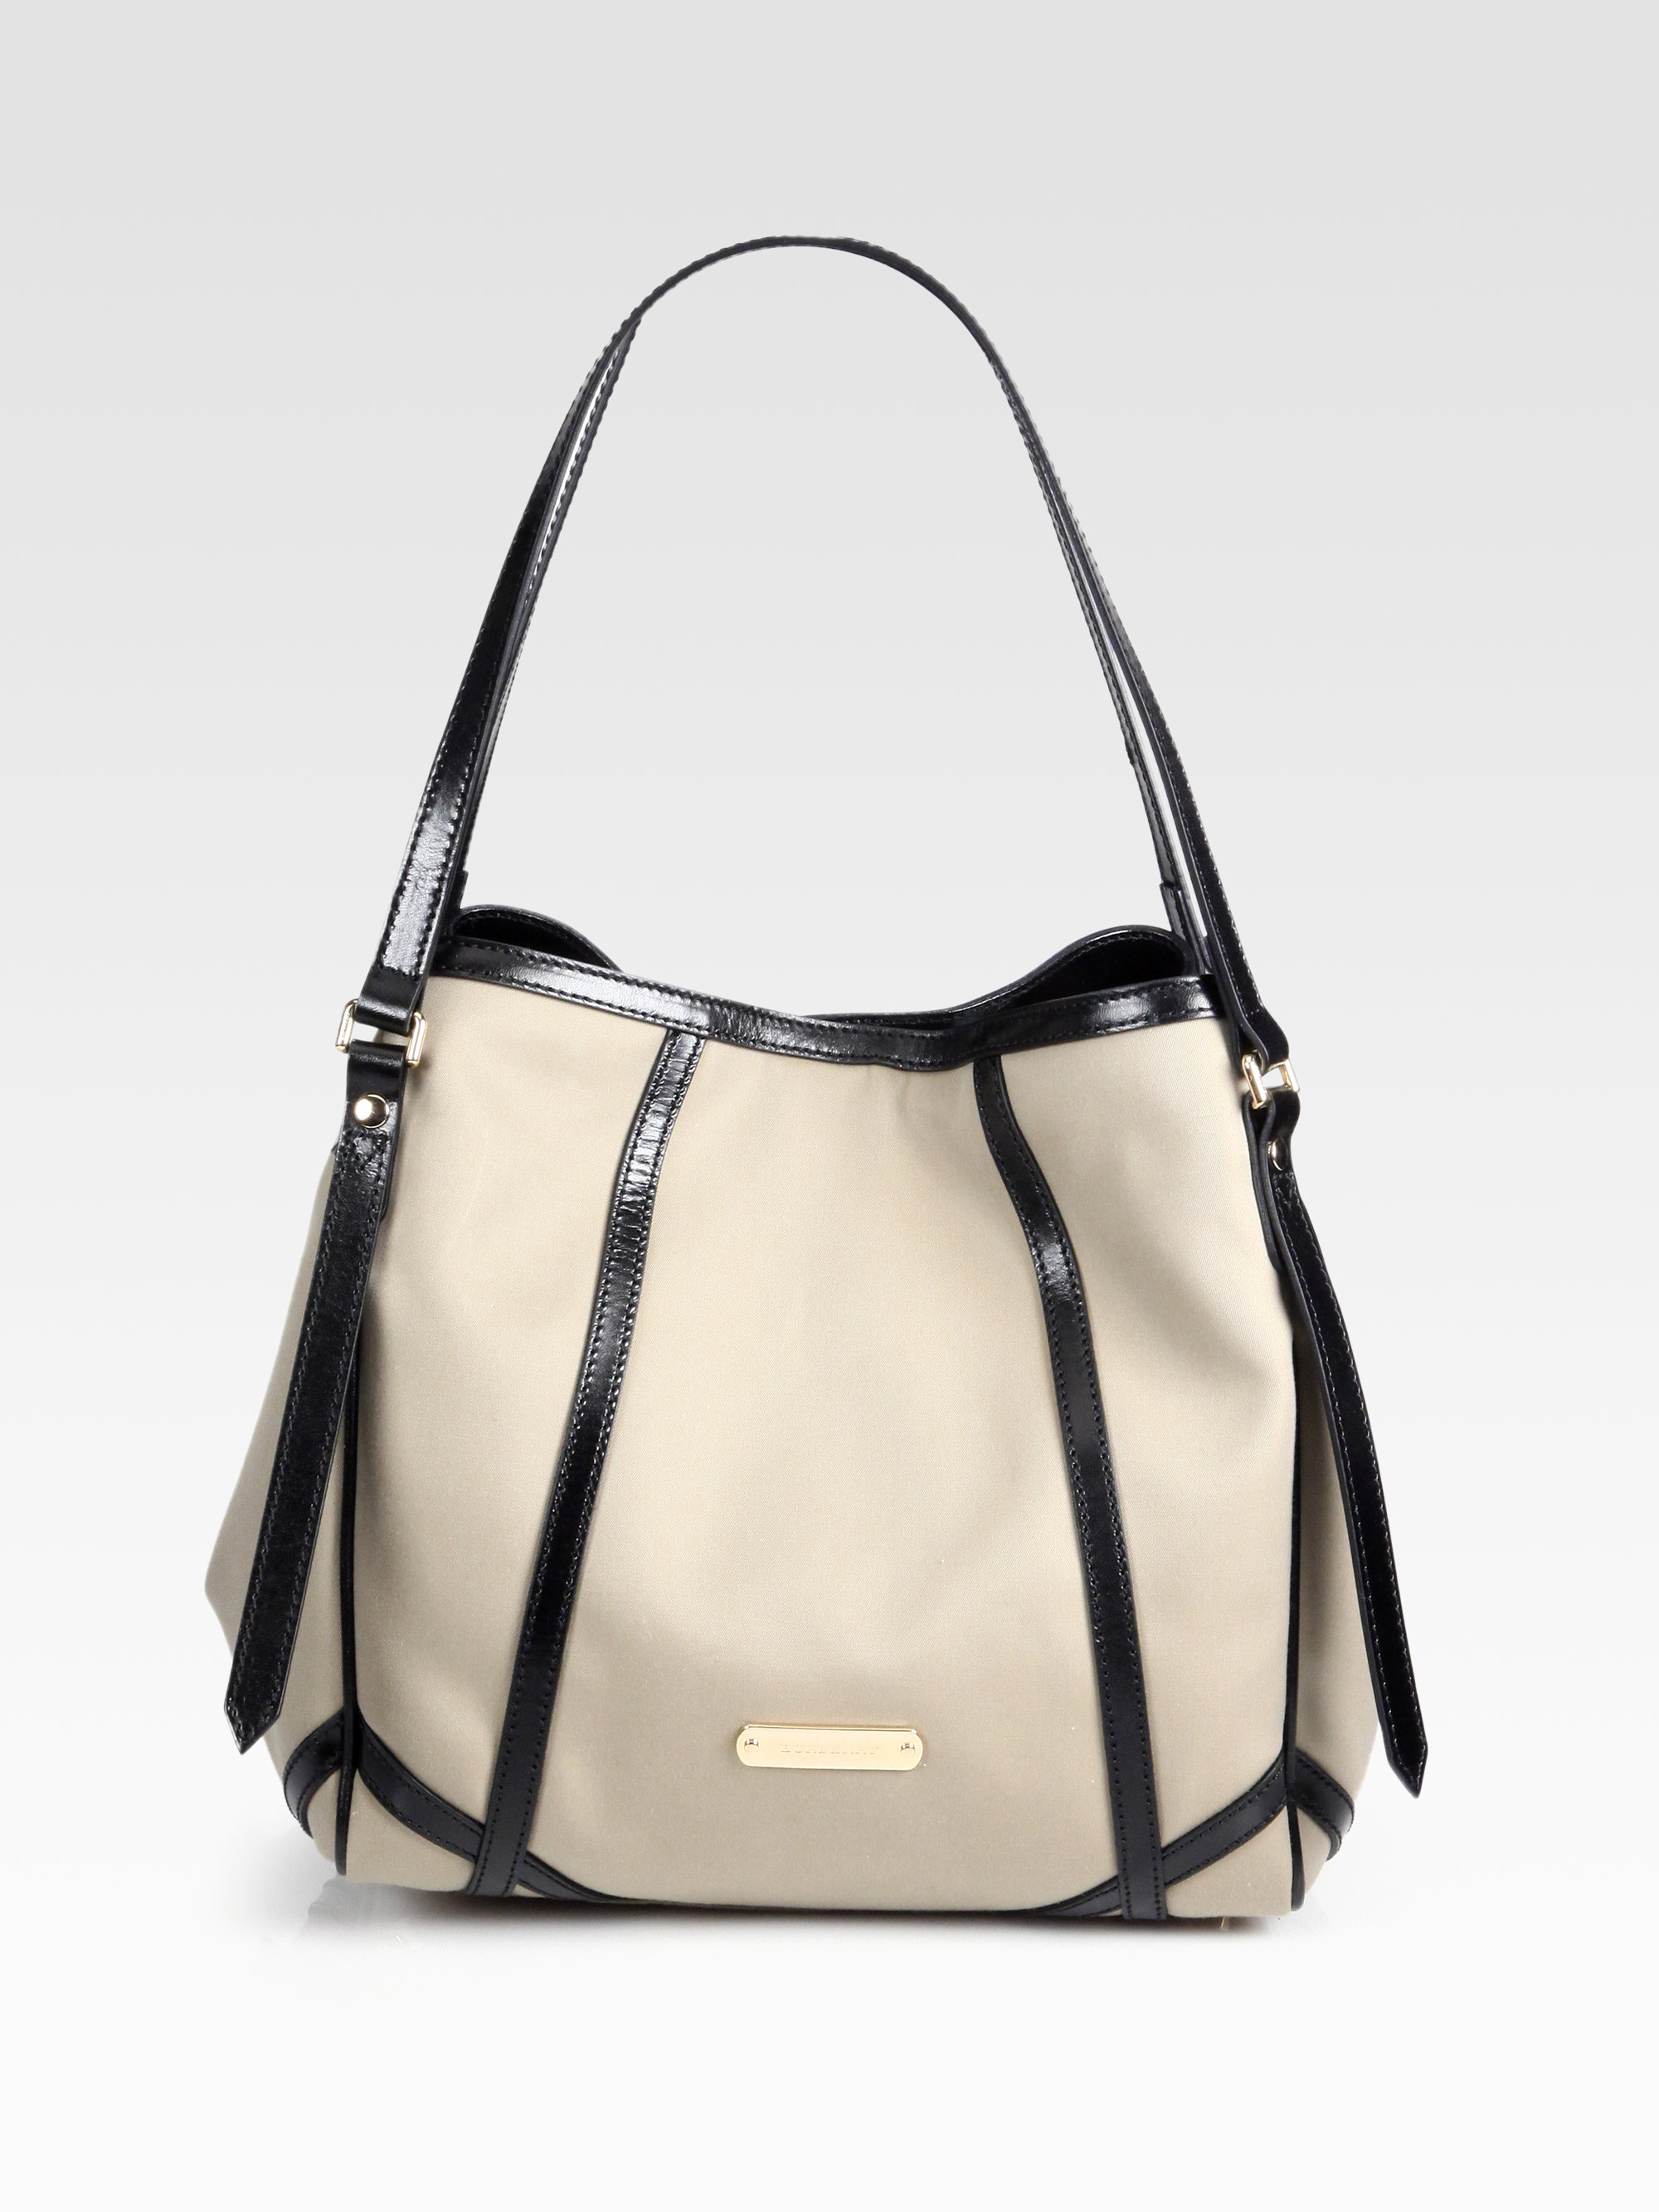 Lyst - Burberry Canterbury Canvas Shoulder Bag in Natural 06c12f18e1a85